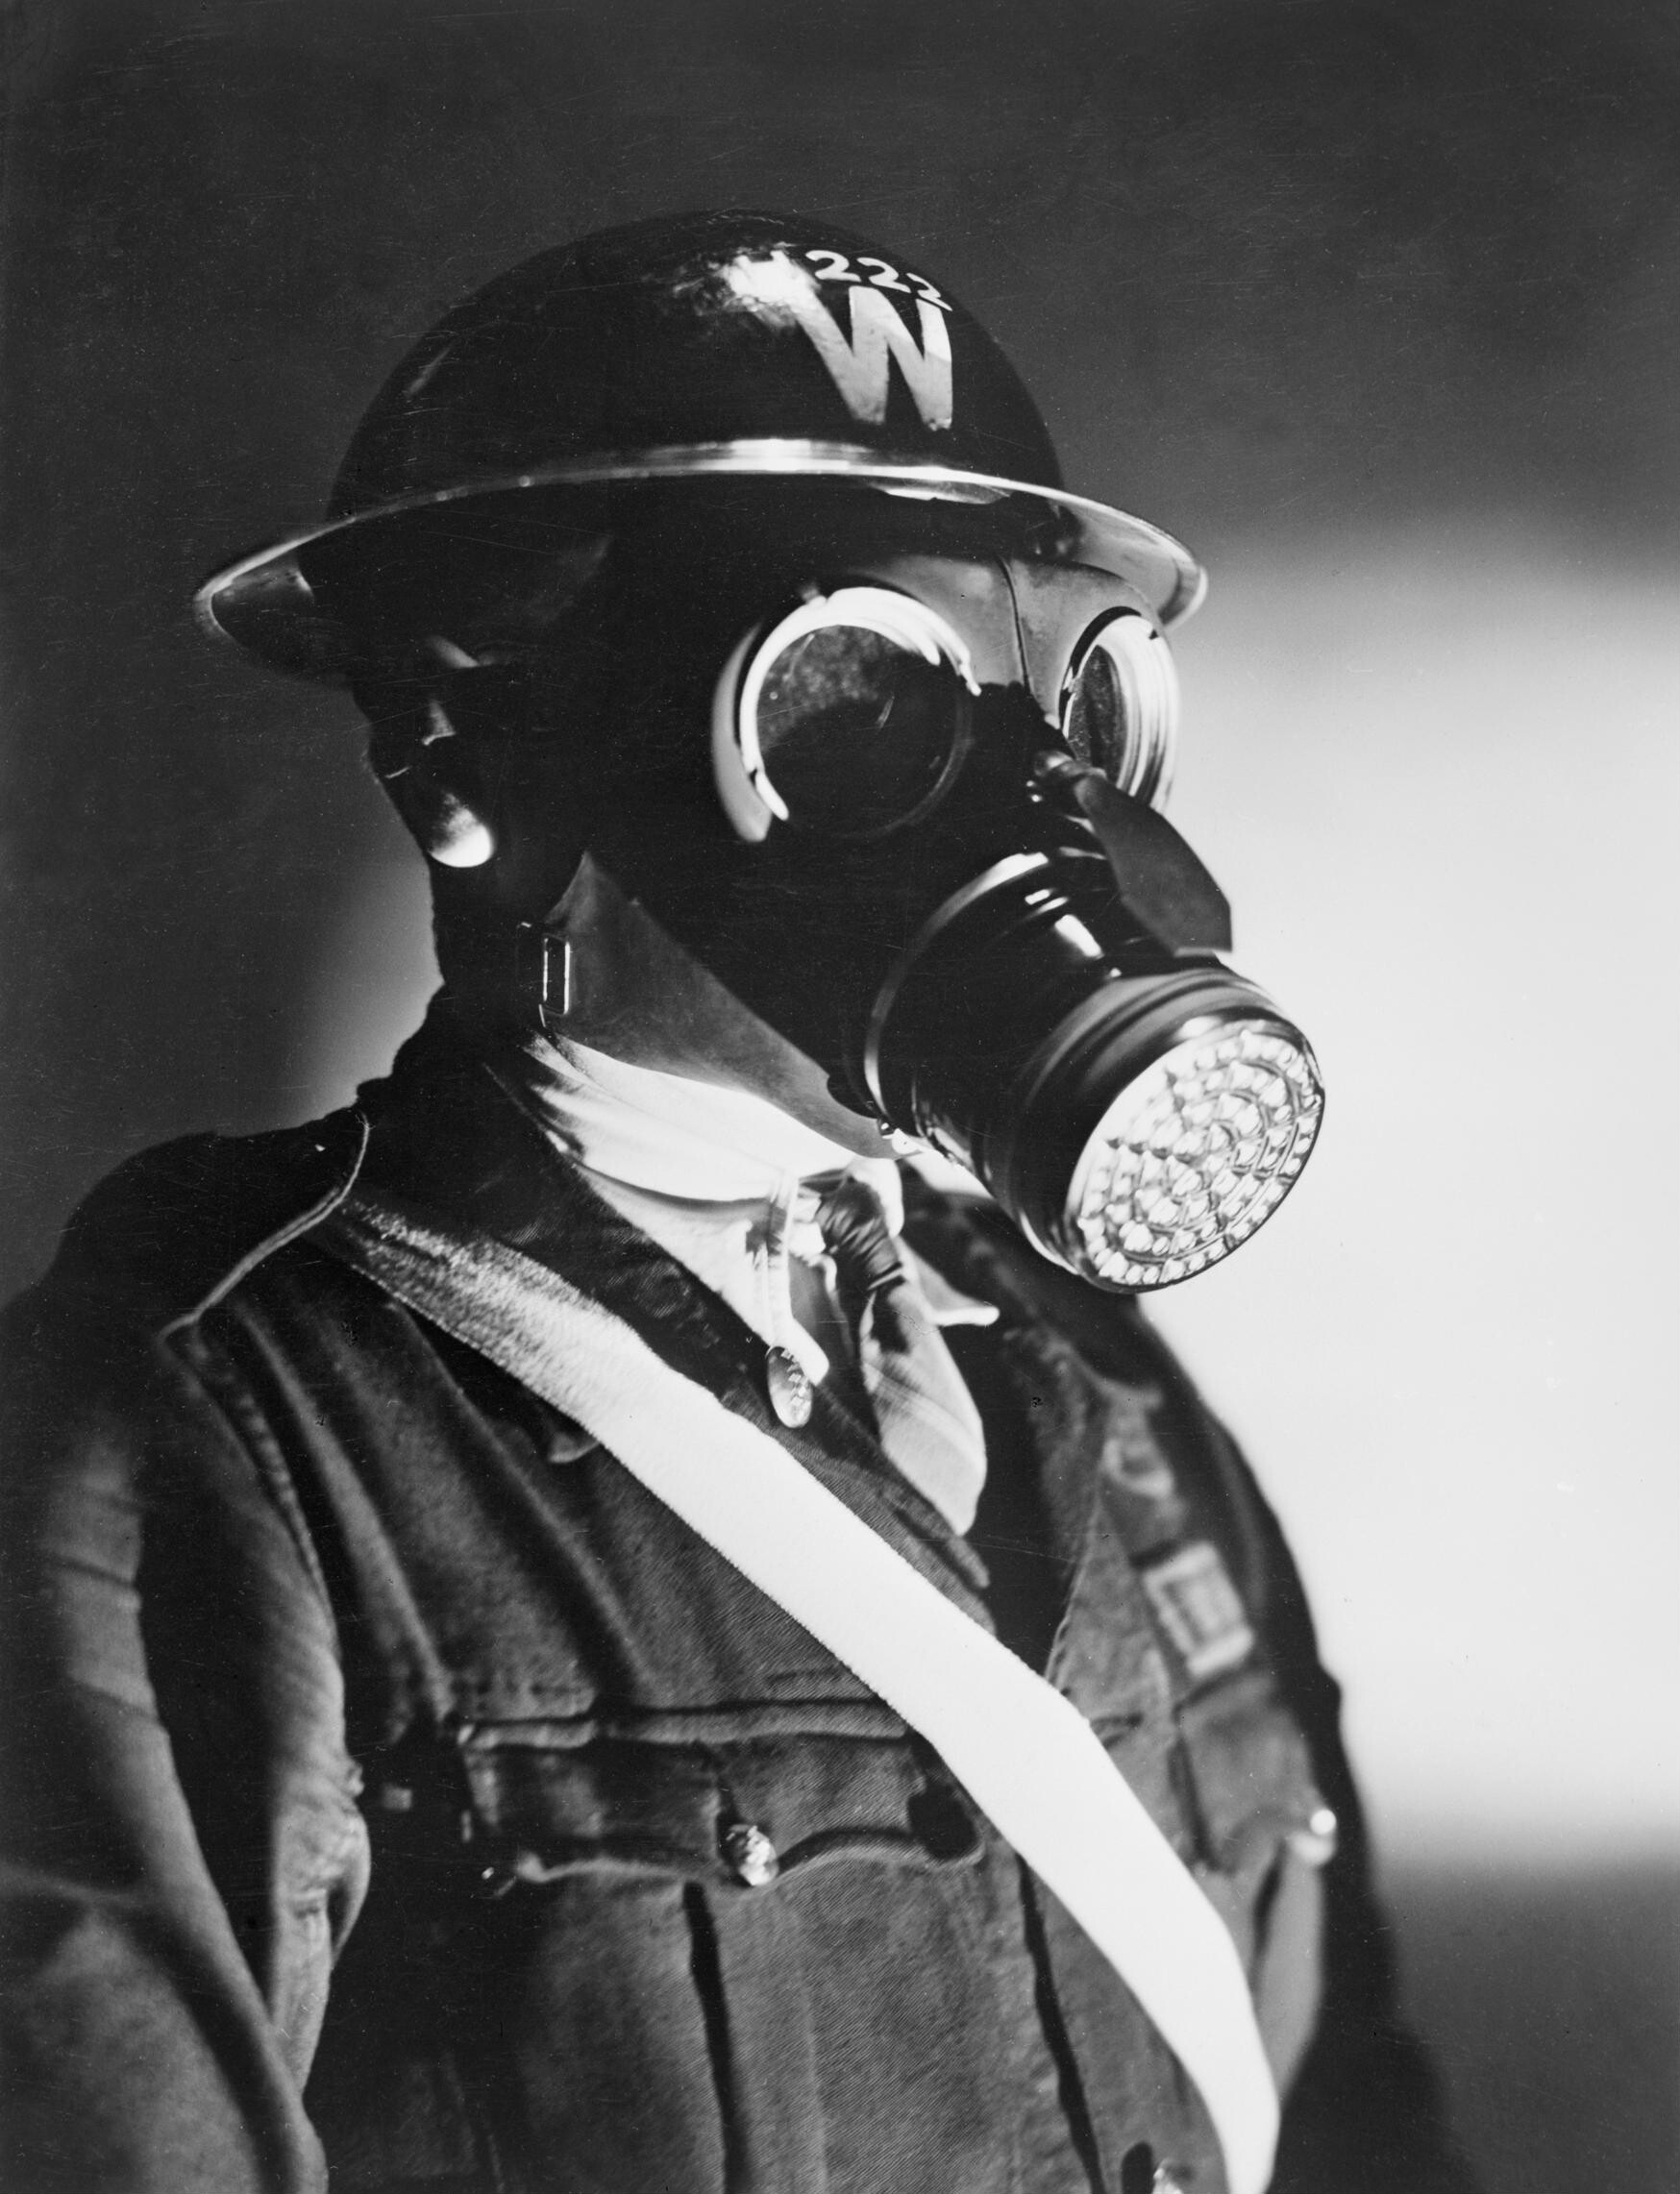 Steel helmet and duty gas mask during the second world war. d4053